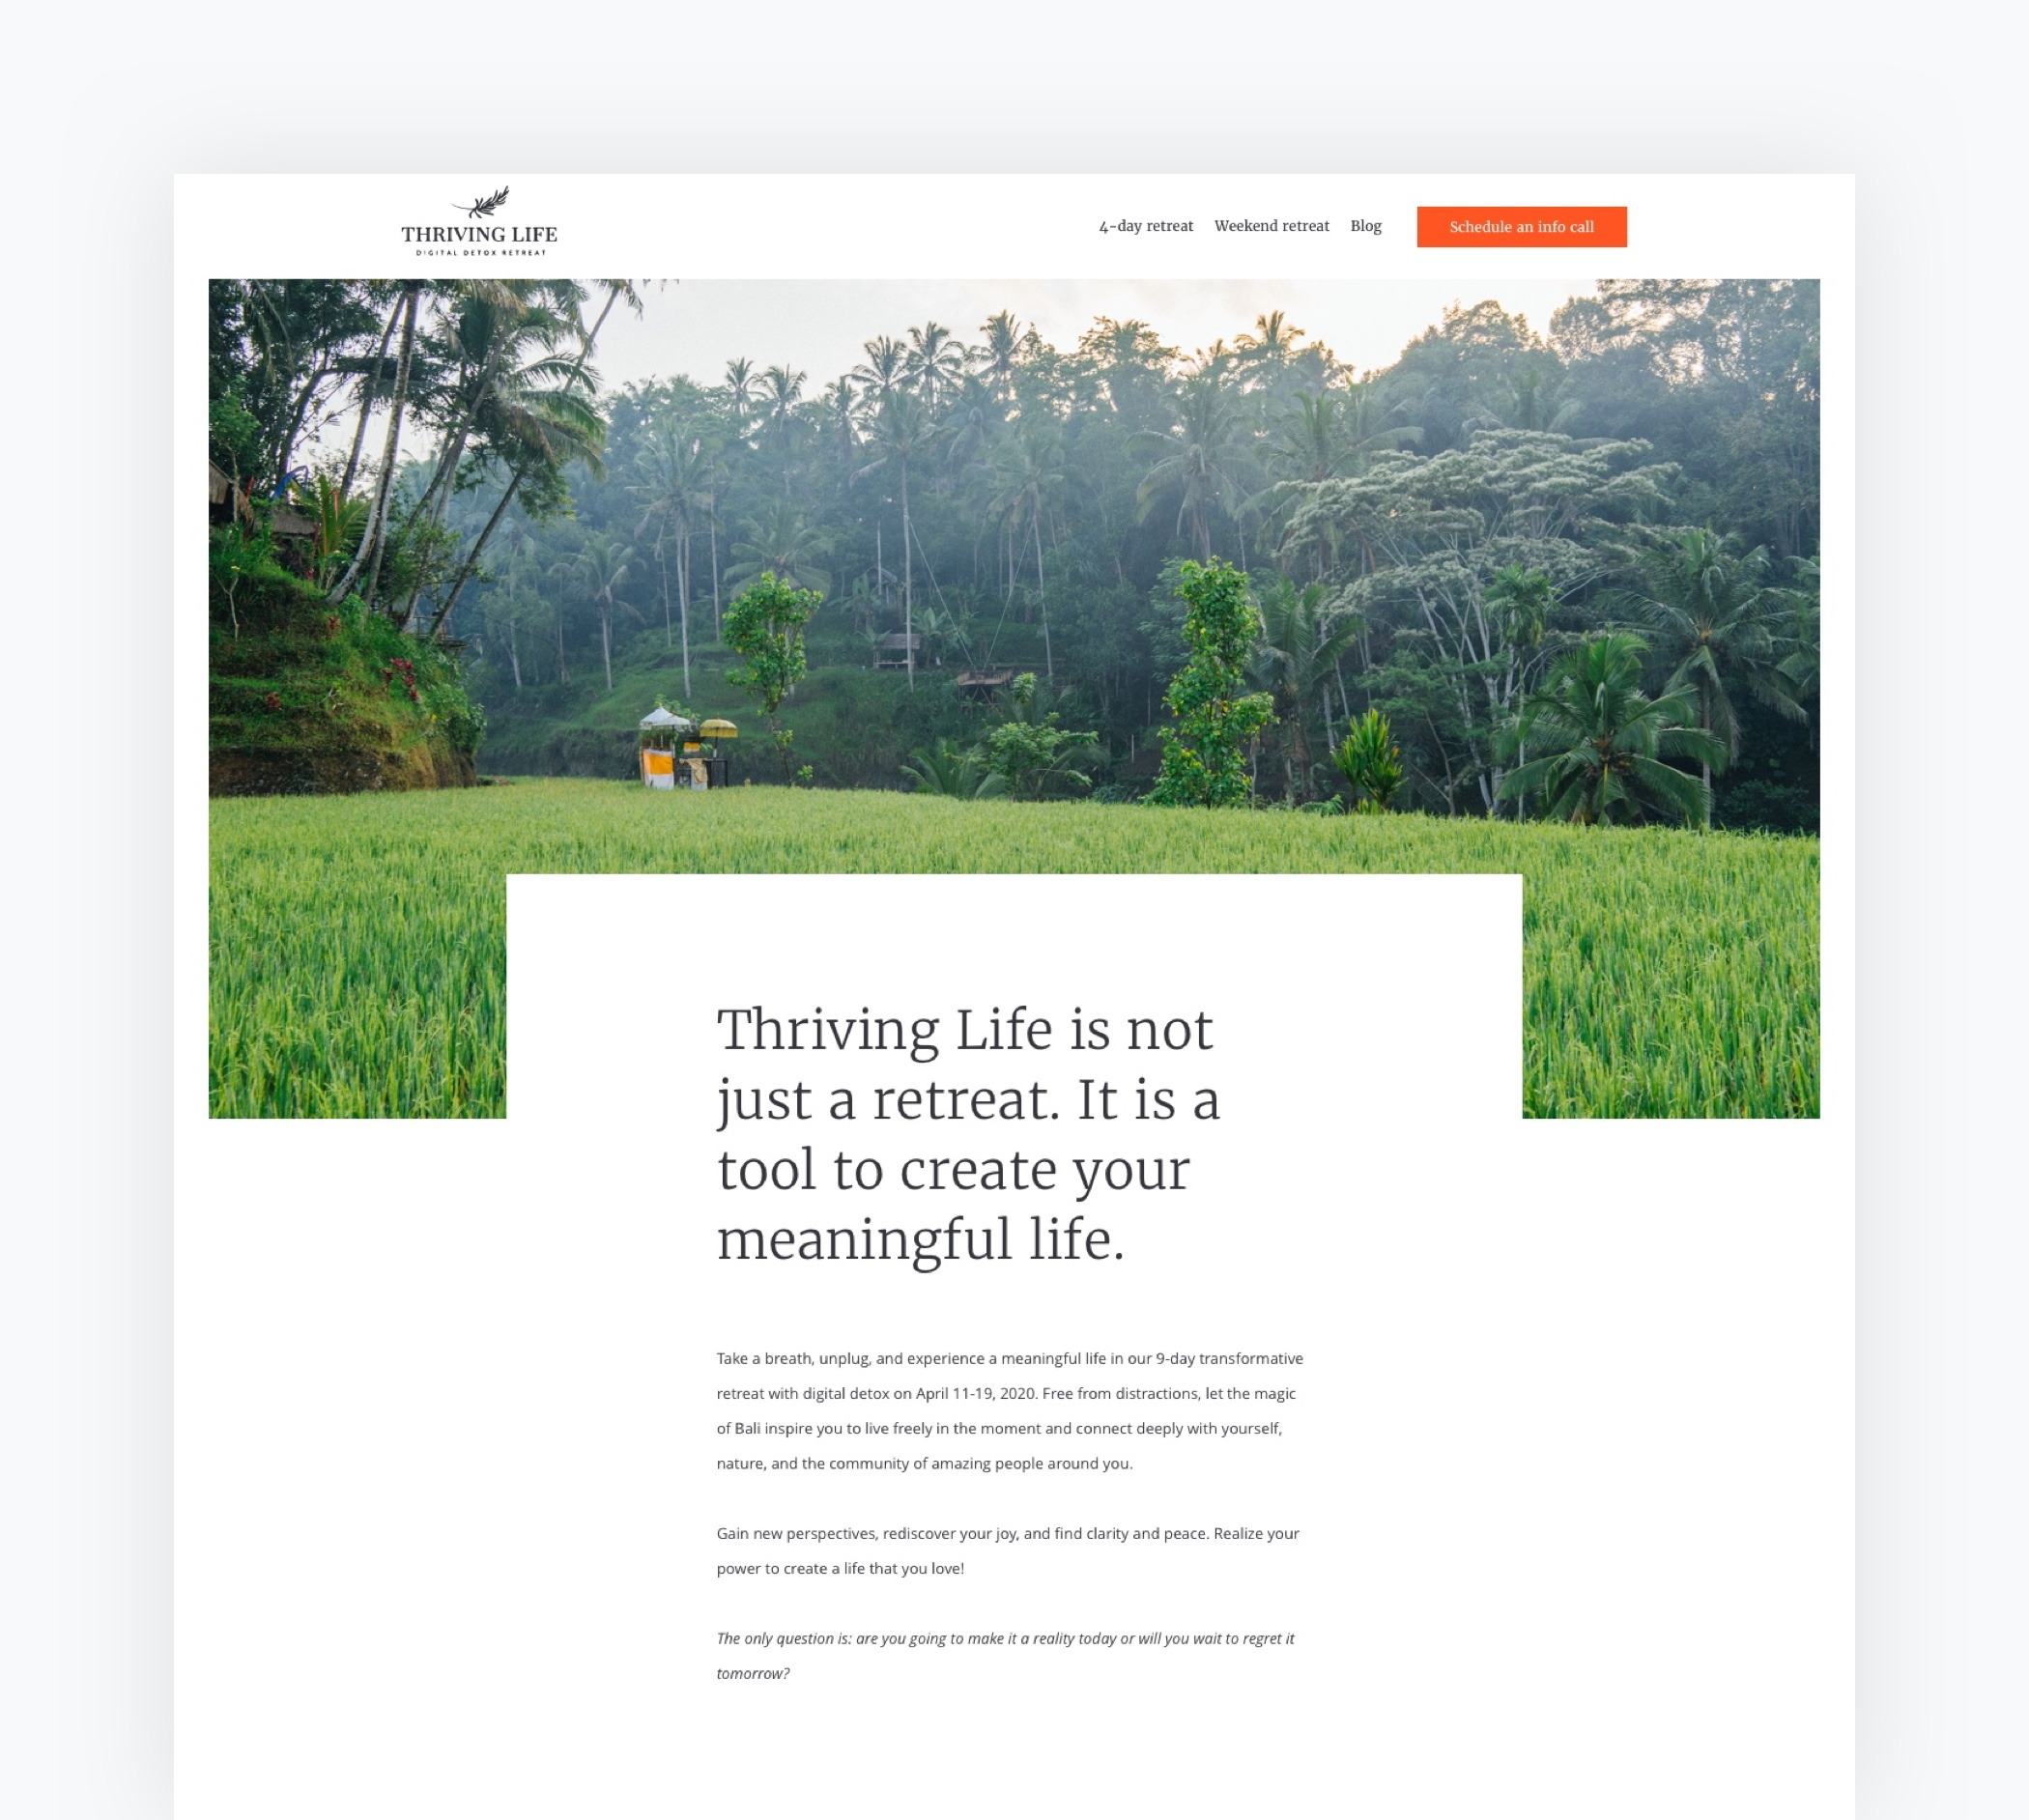 Thriving Life Digital Detox Retreat: image of the tope of the homepage's design